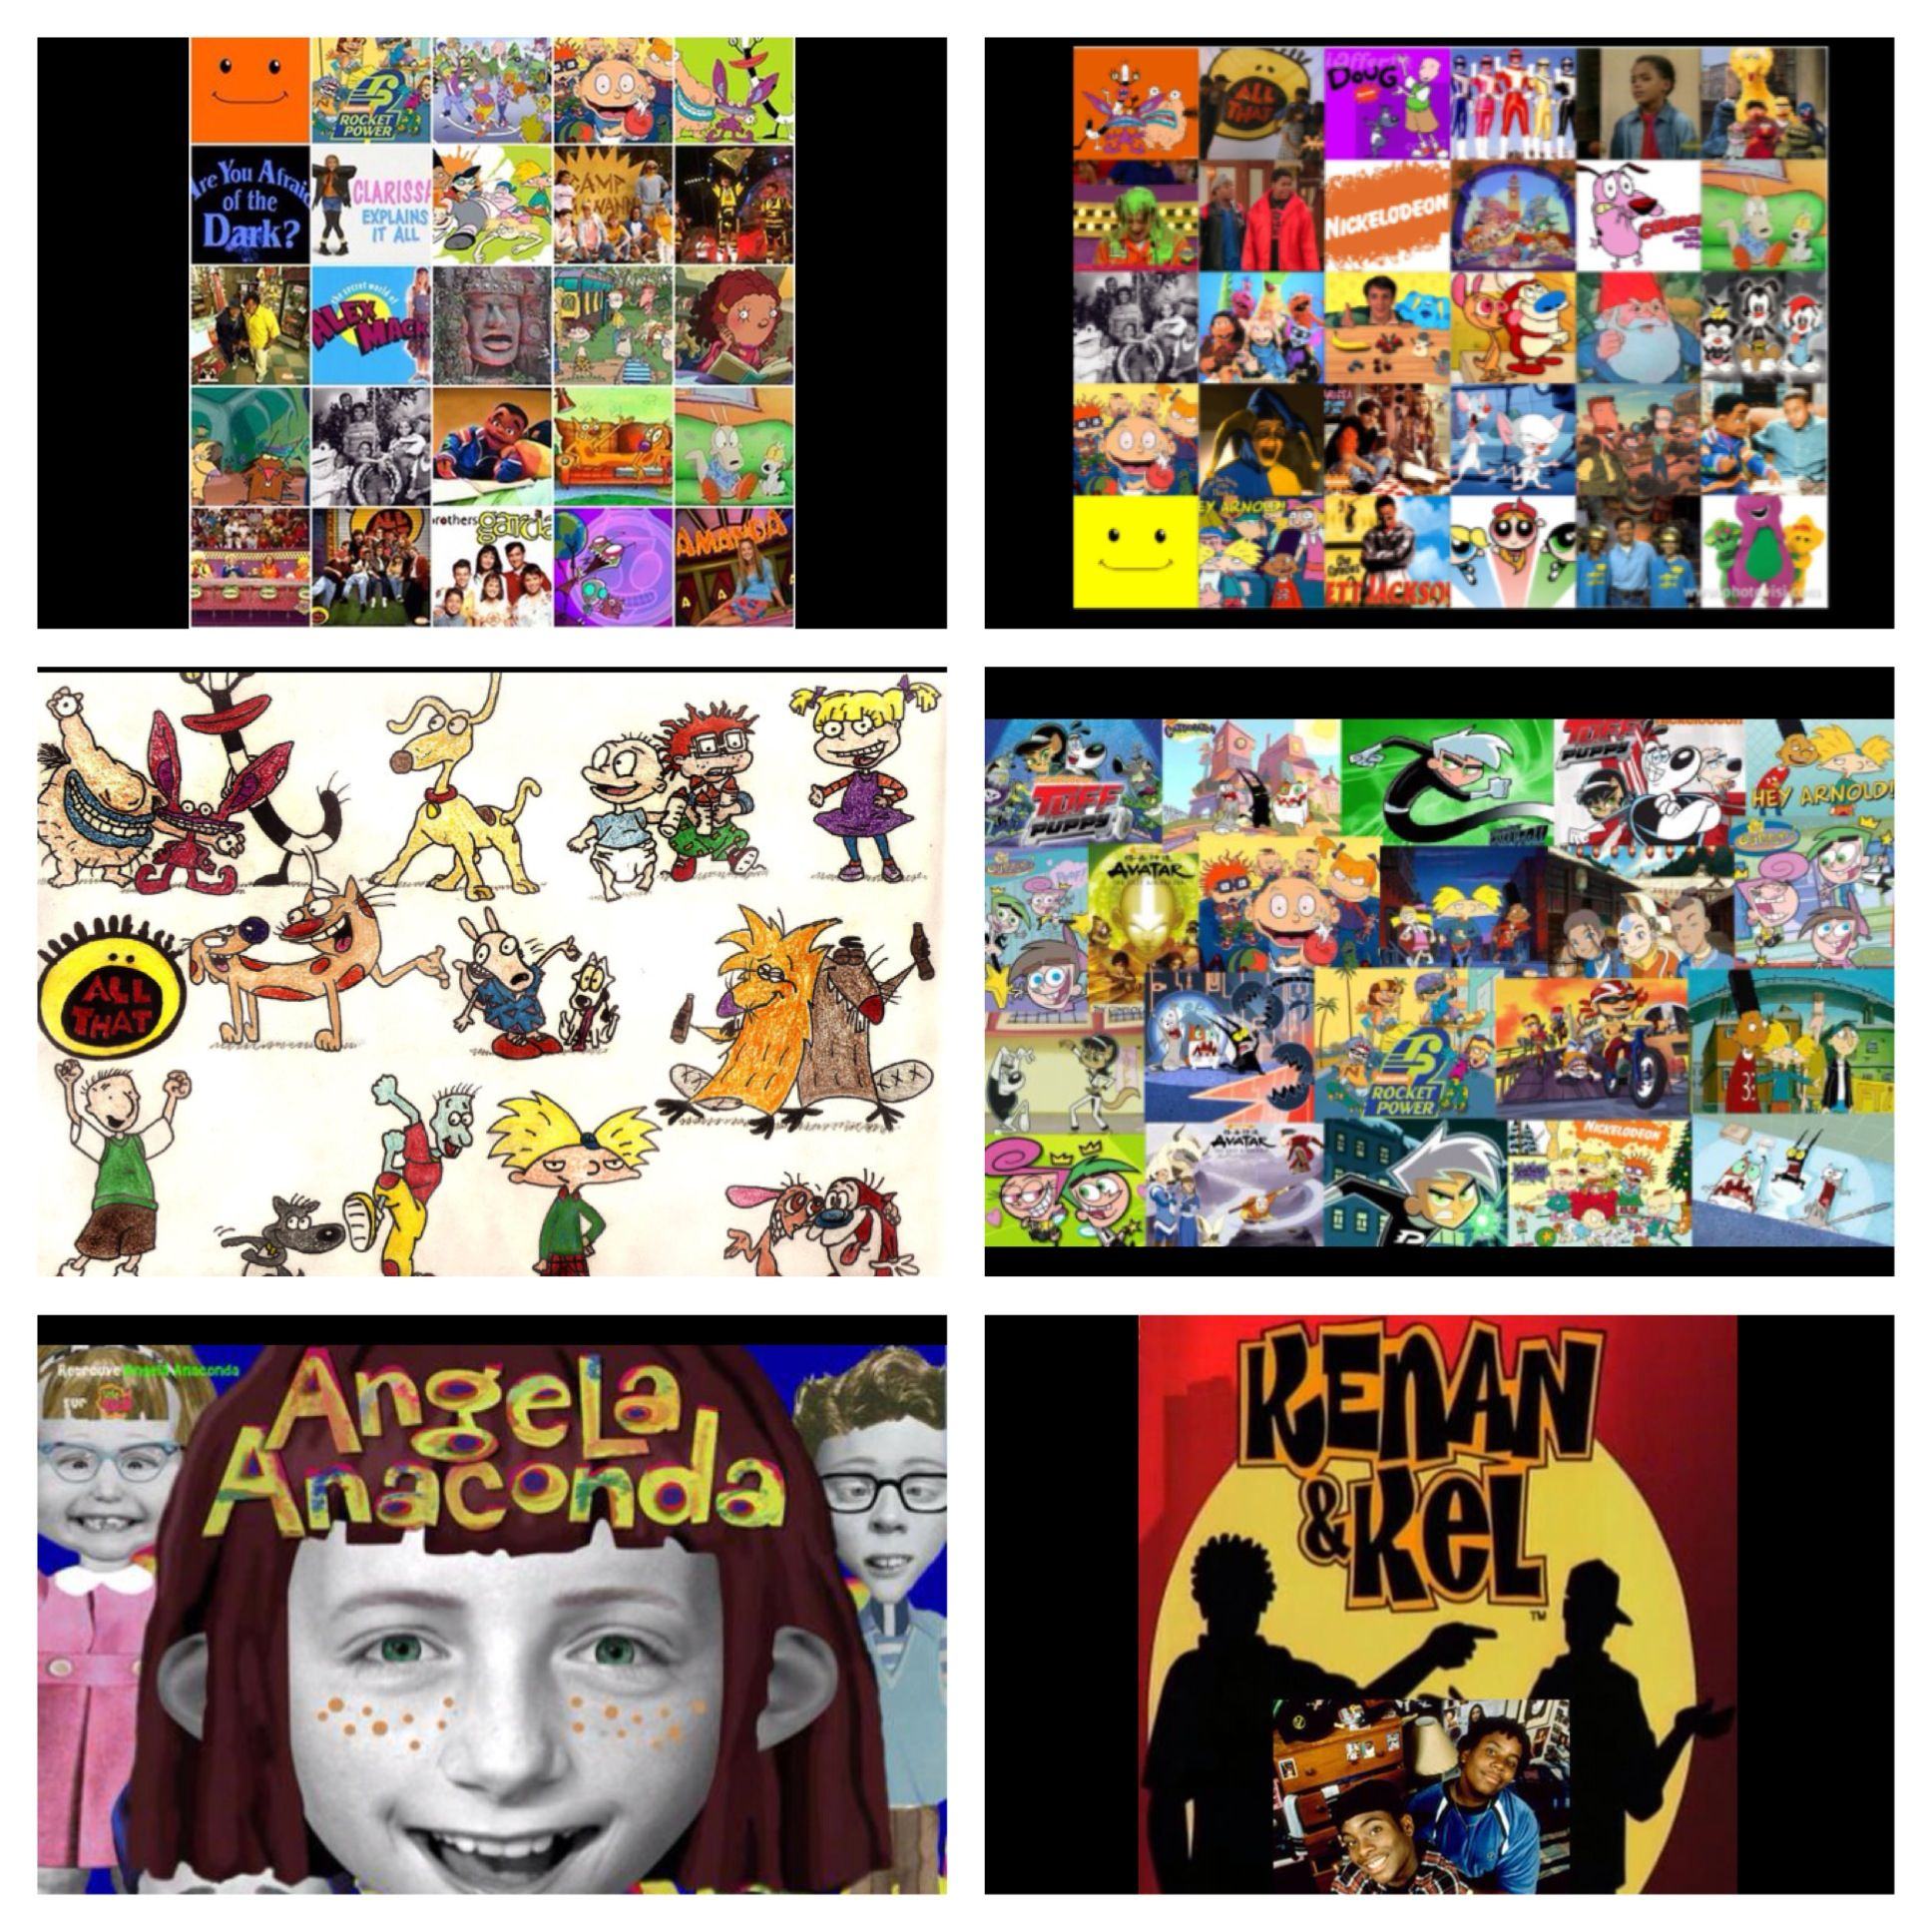 Anything 90's and early 2000's Nickelodeon shows